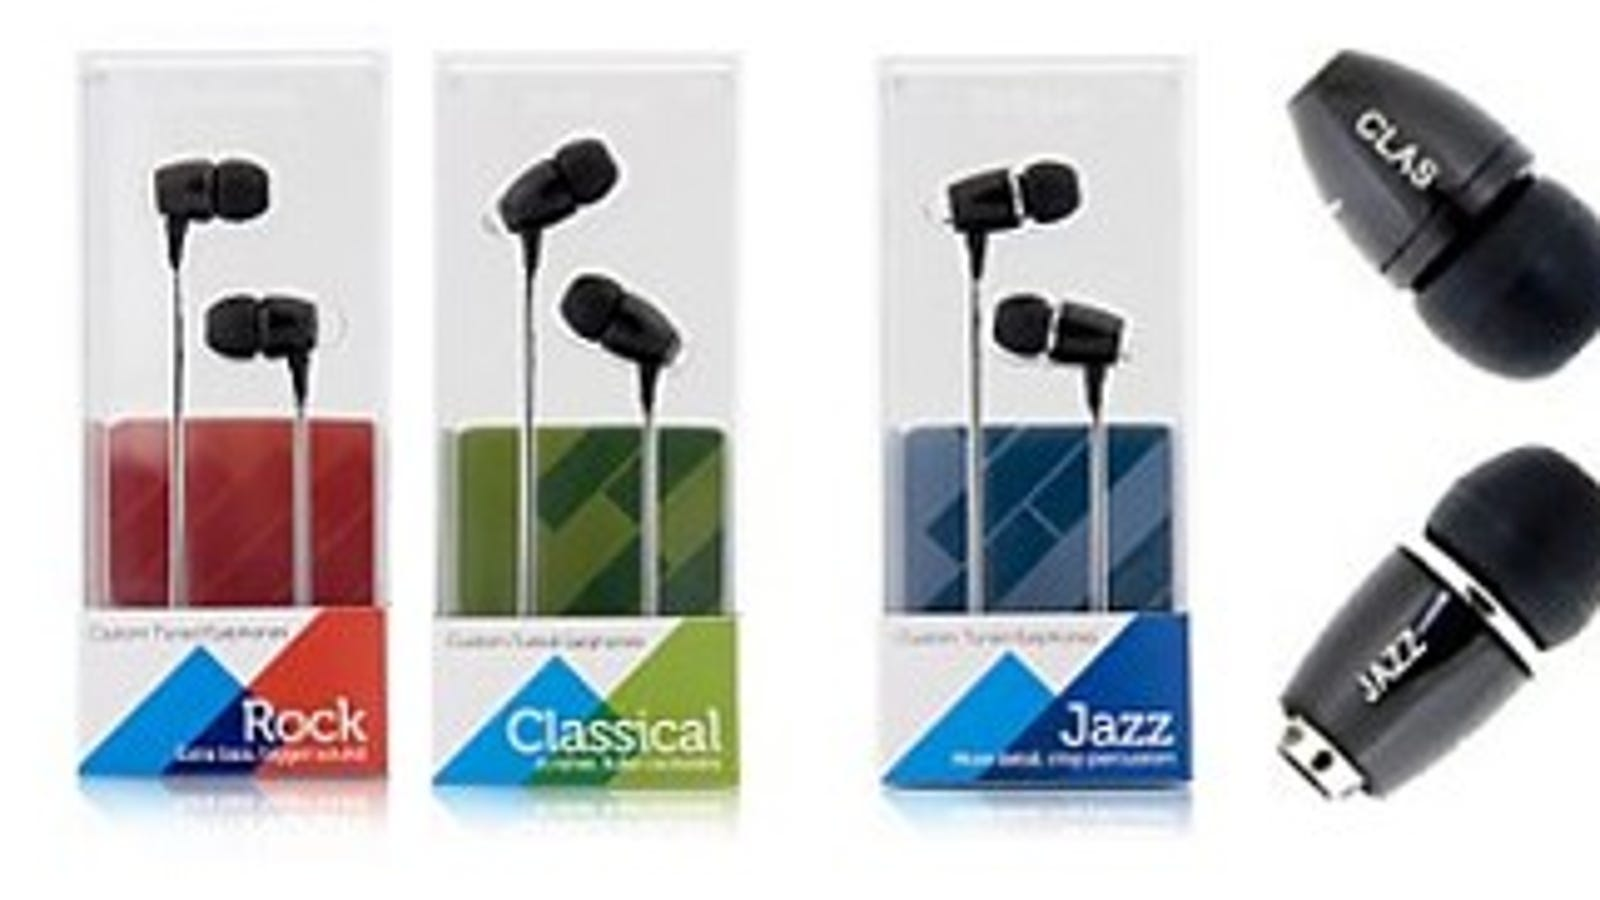 earbud tips jabra mini earpiece